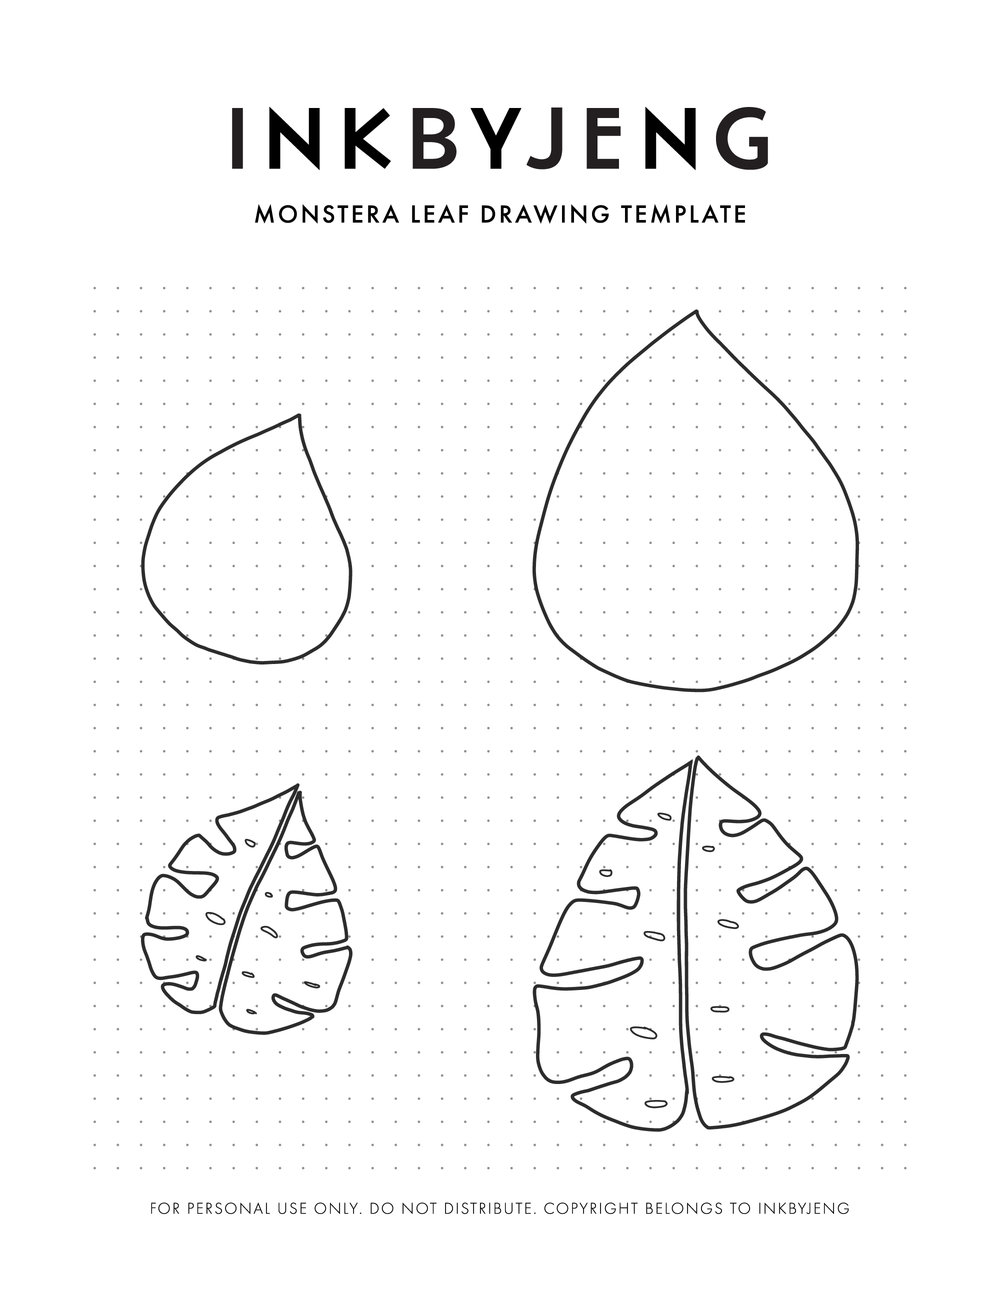 inkbyjeng_drawing_tutorial_monstera_leaf_template.jpg